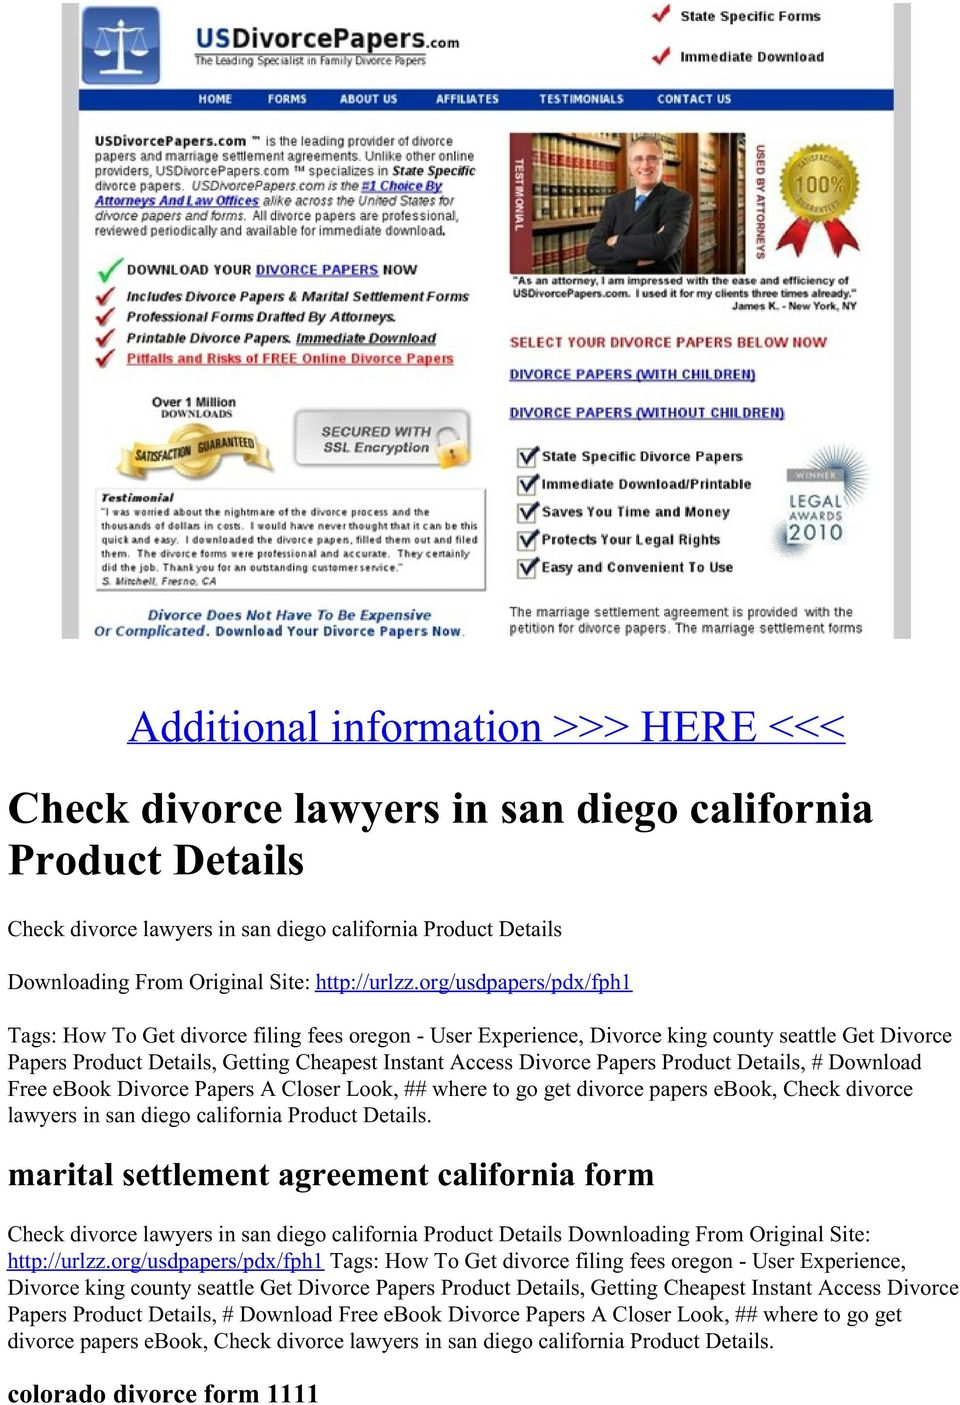 San Diego Family Court Divorce Forms